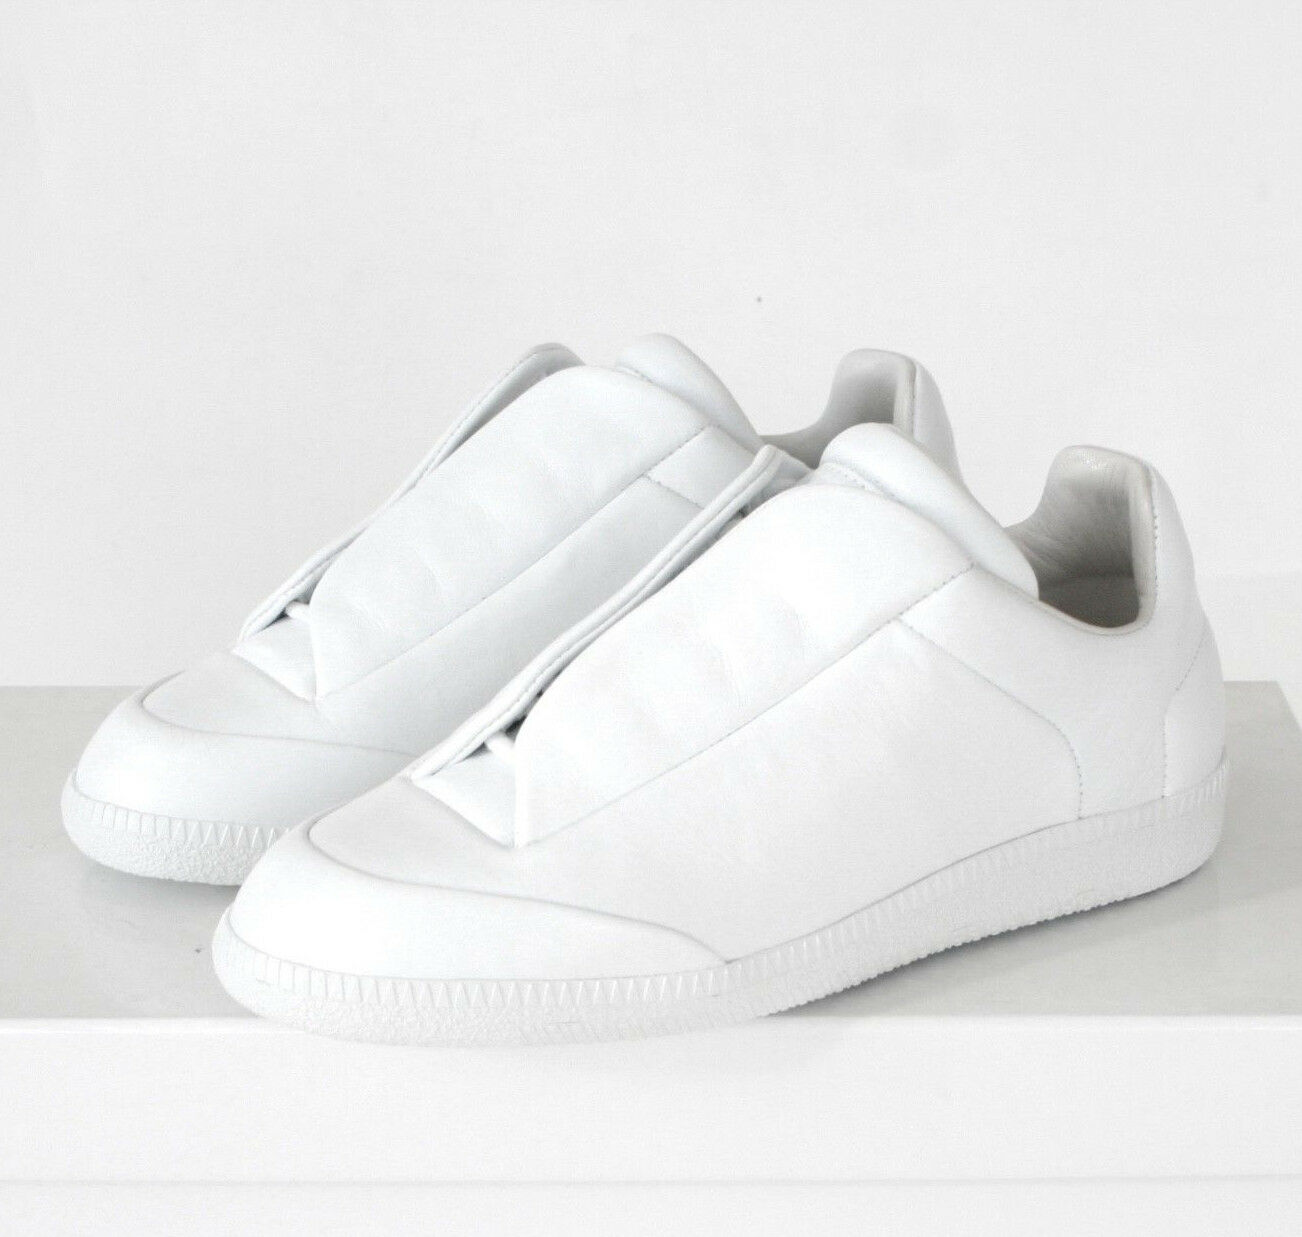 MAISON MARTIN MARGIELA white leather low top shoes Future modern sneakers 36 NEW